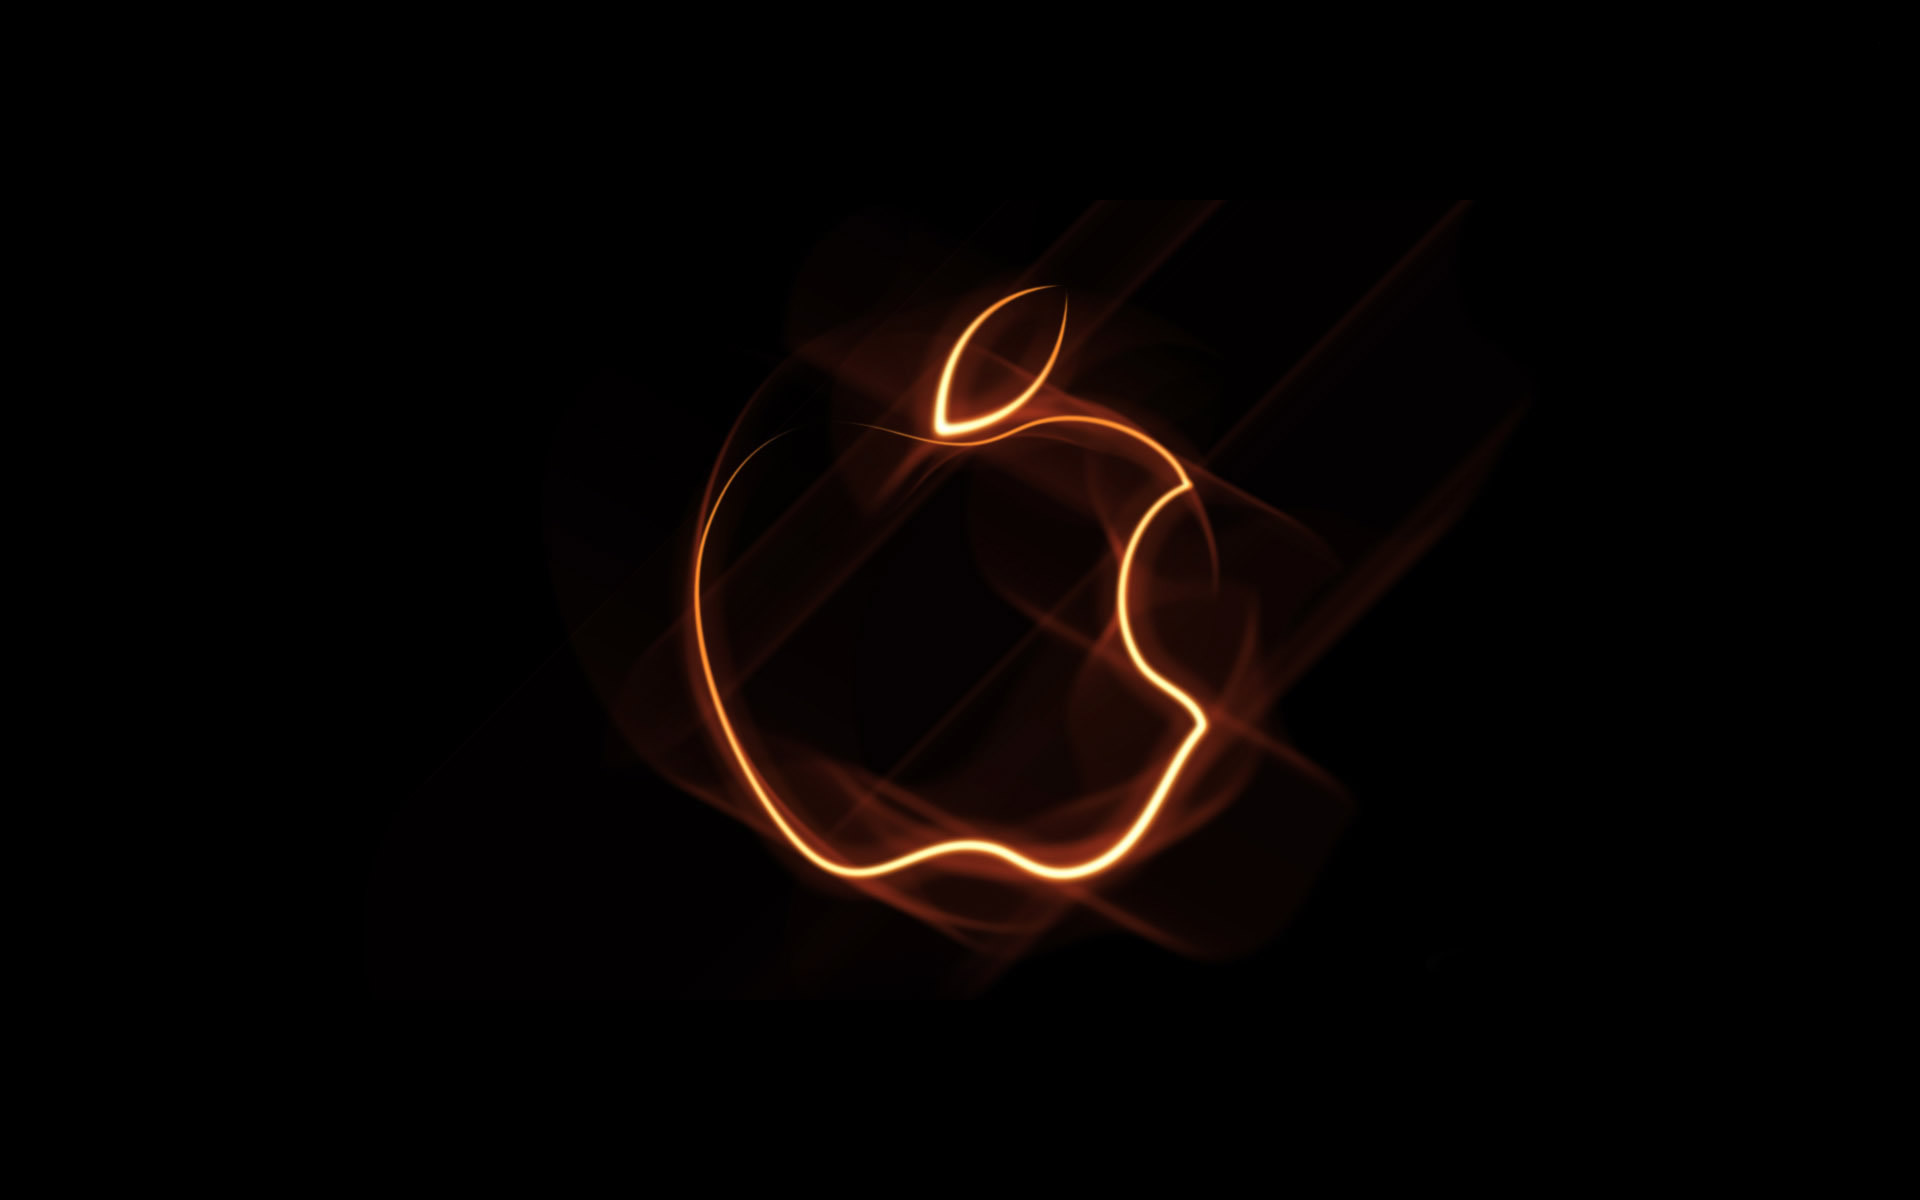 Apple Inc. 35.4% Potential Upside Now Implied by Maxim Group